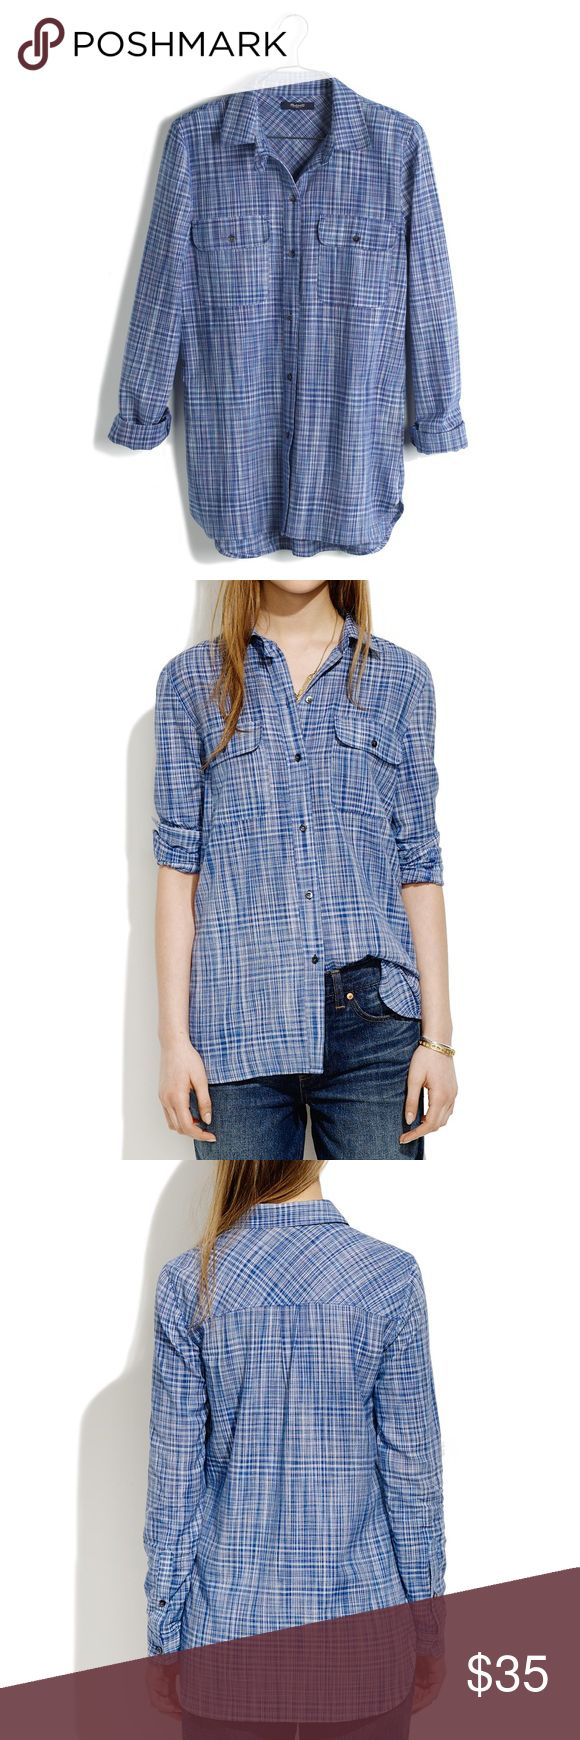 Madewell Ex-Boyfriend Shirt in Indigo Weave Hardly worn shirt by Madewell. Slightly oversized (go ahead and roll the sleeves) in shades of summery indigo.  Boyfriend fit. Cotton. Dry clean. Import. Item A5619. Size XS Madewell Tops Button Down Shirts